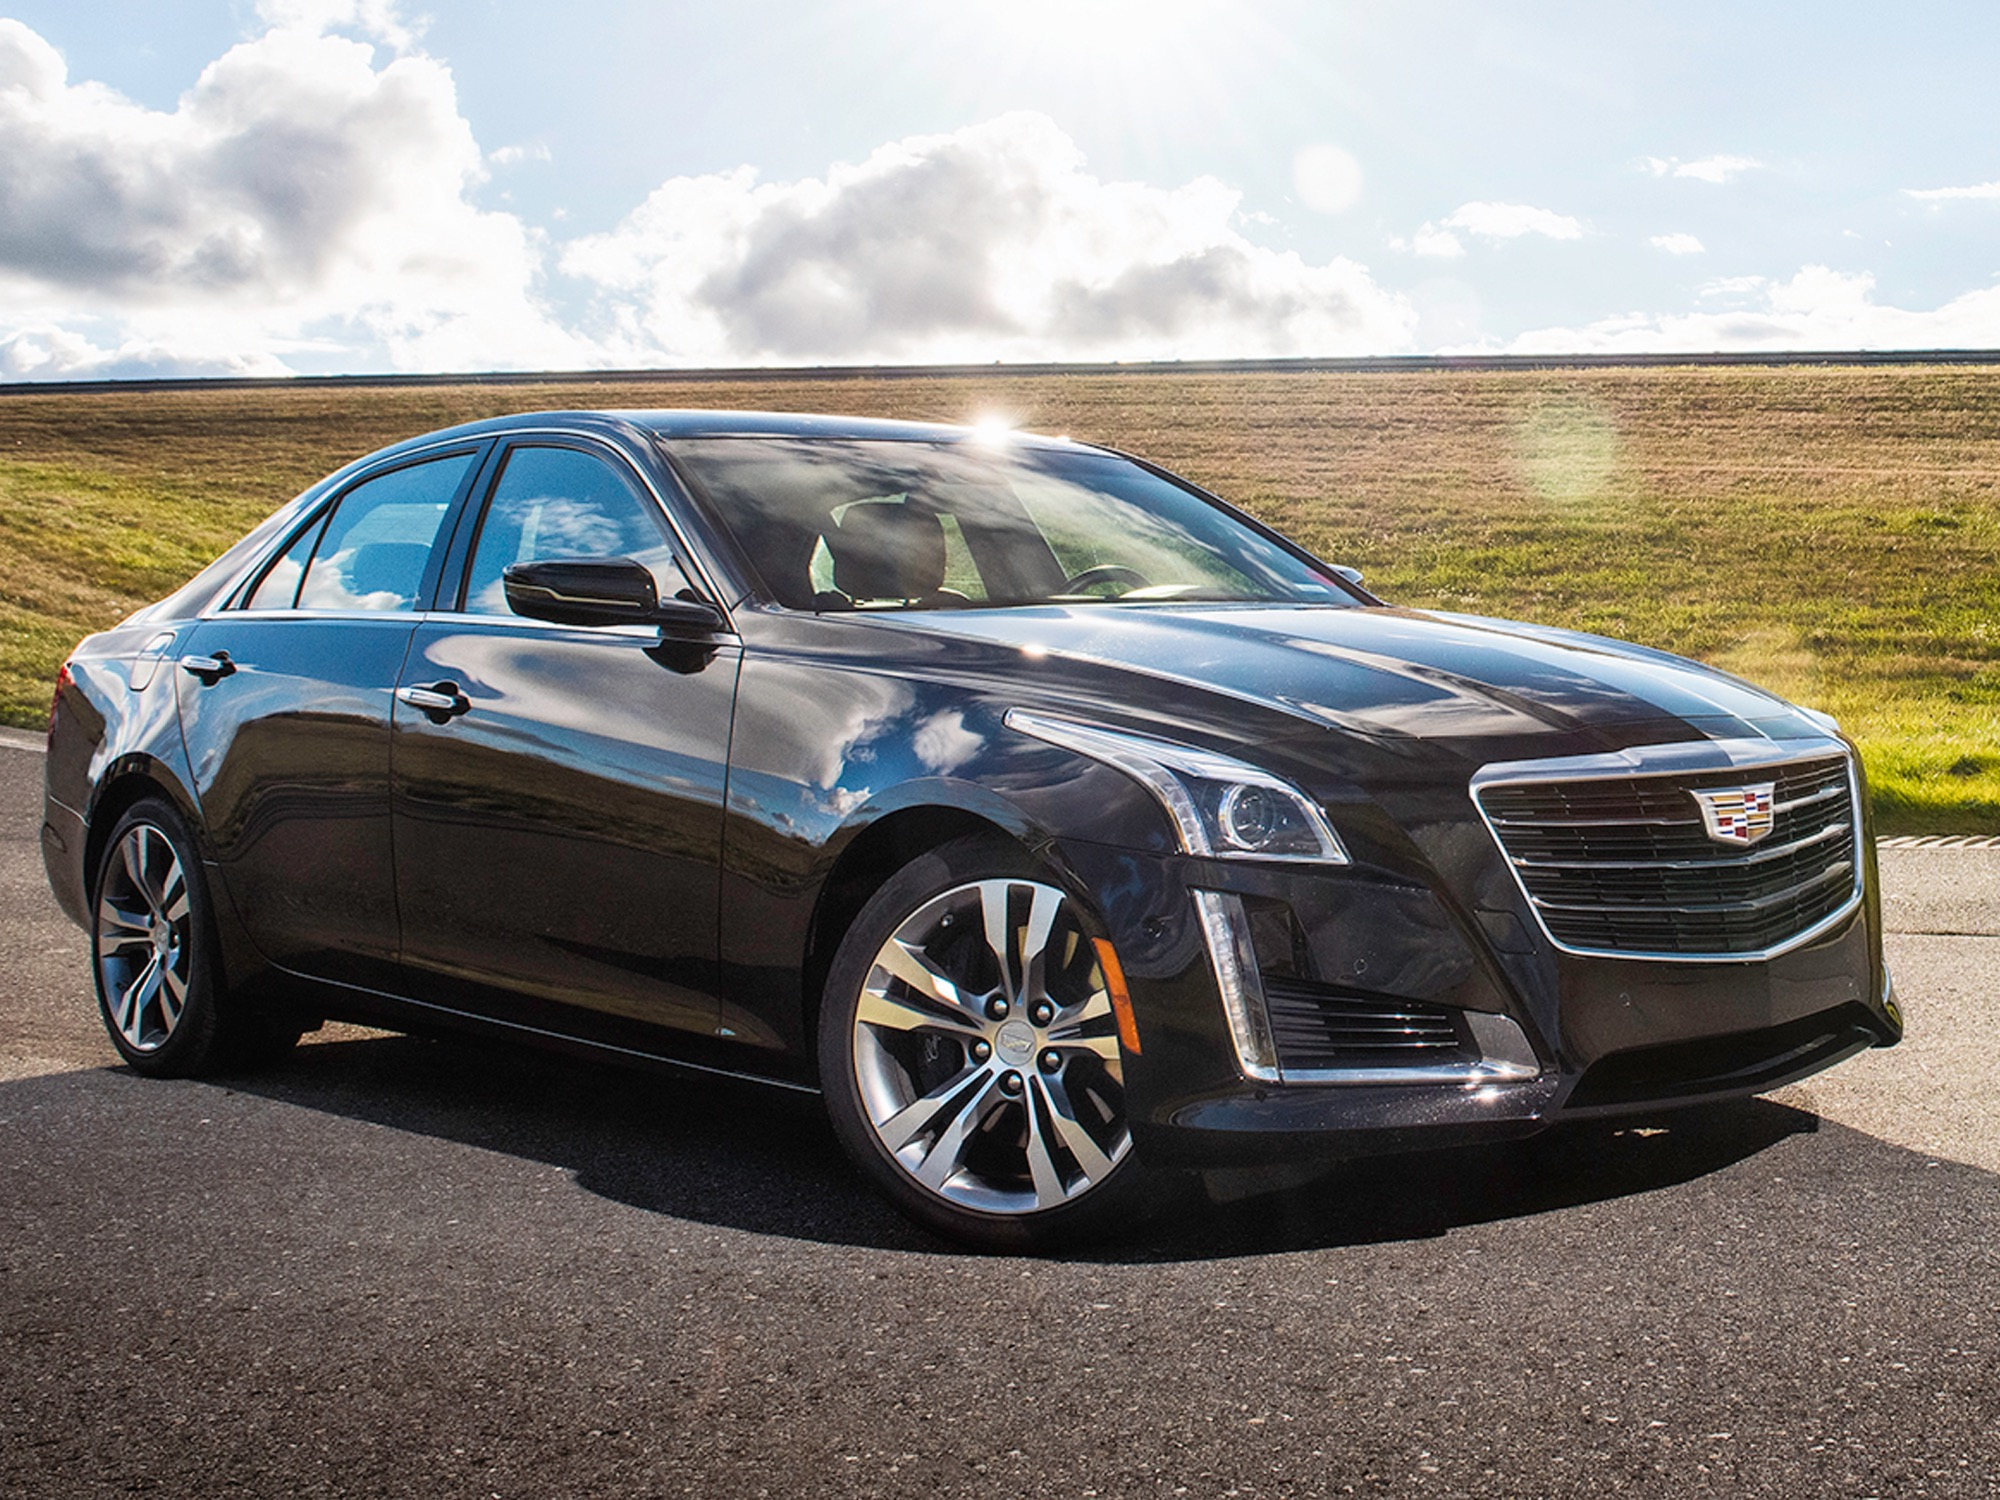 Cadillac Vehicle Pictures, Photos, Images & Galleries